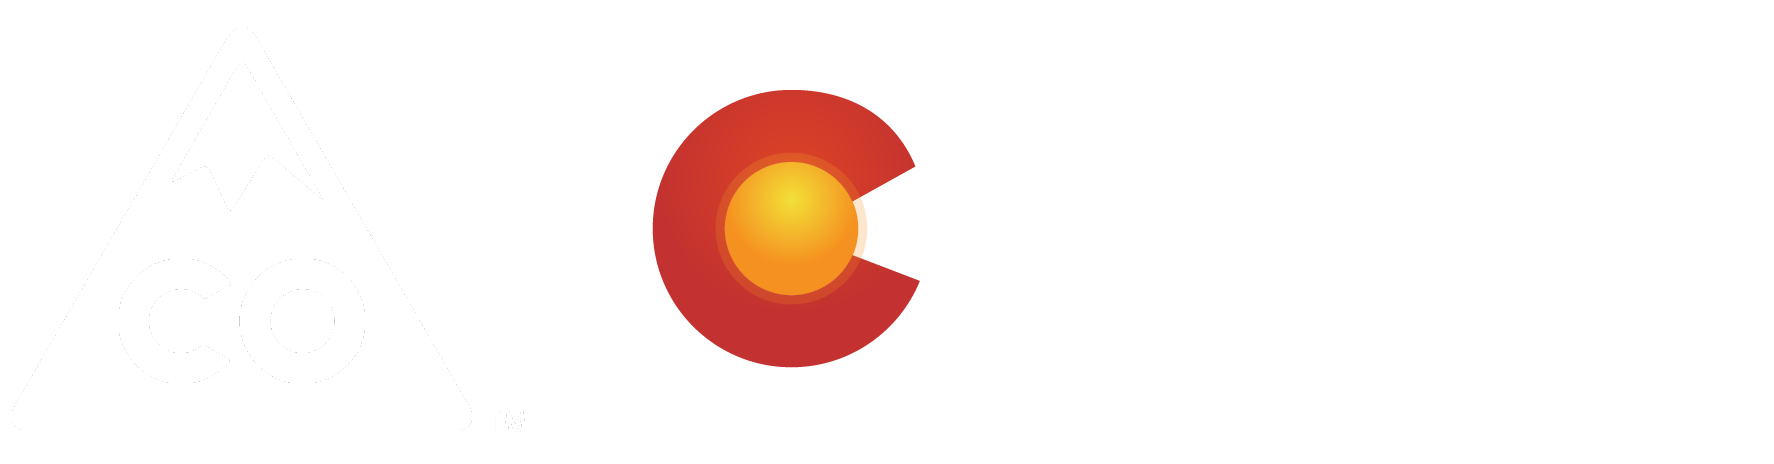 Colorado Office Of Economic Development And International Trade Oedit